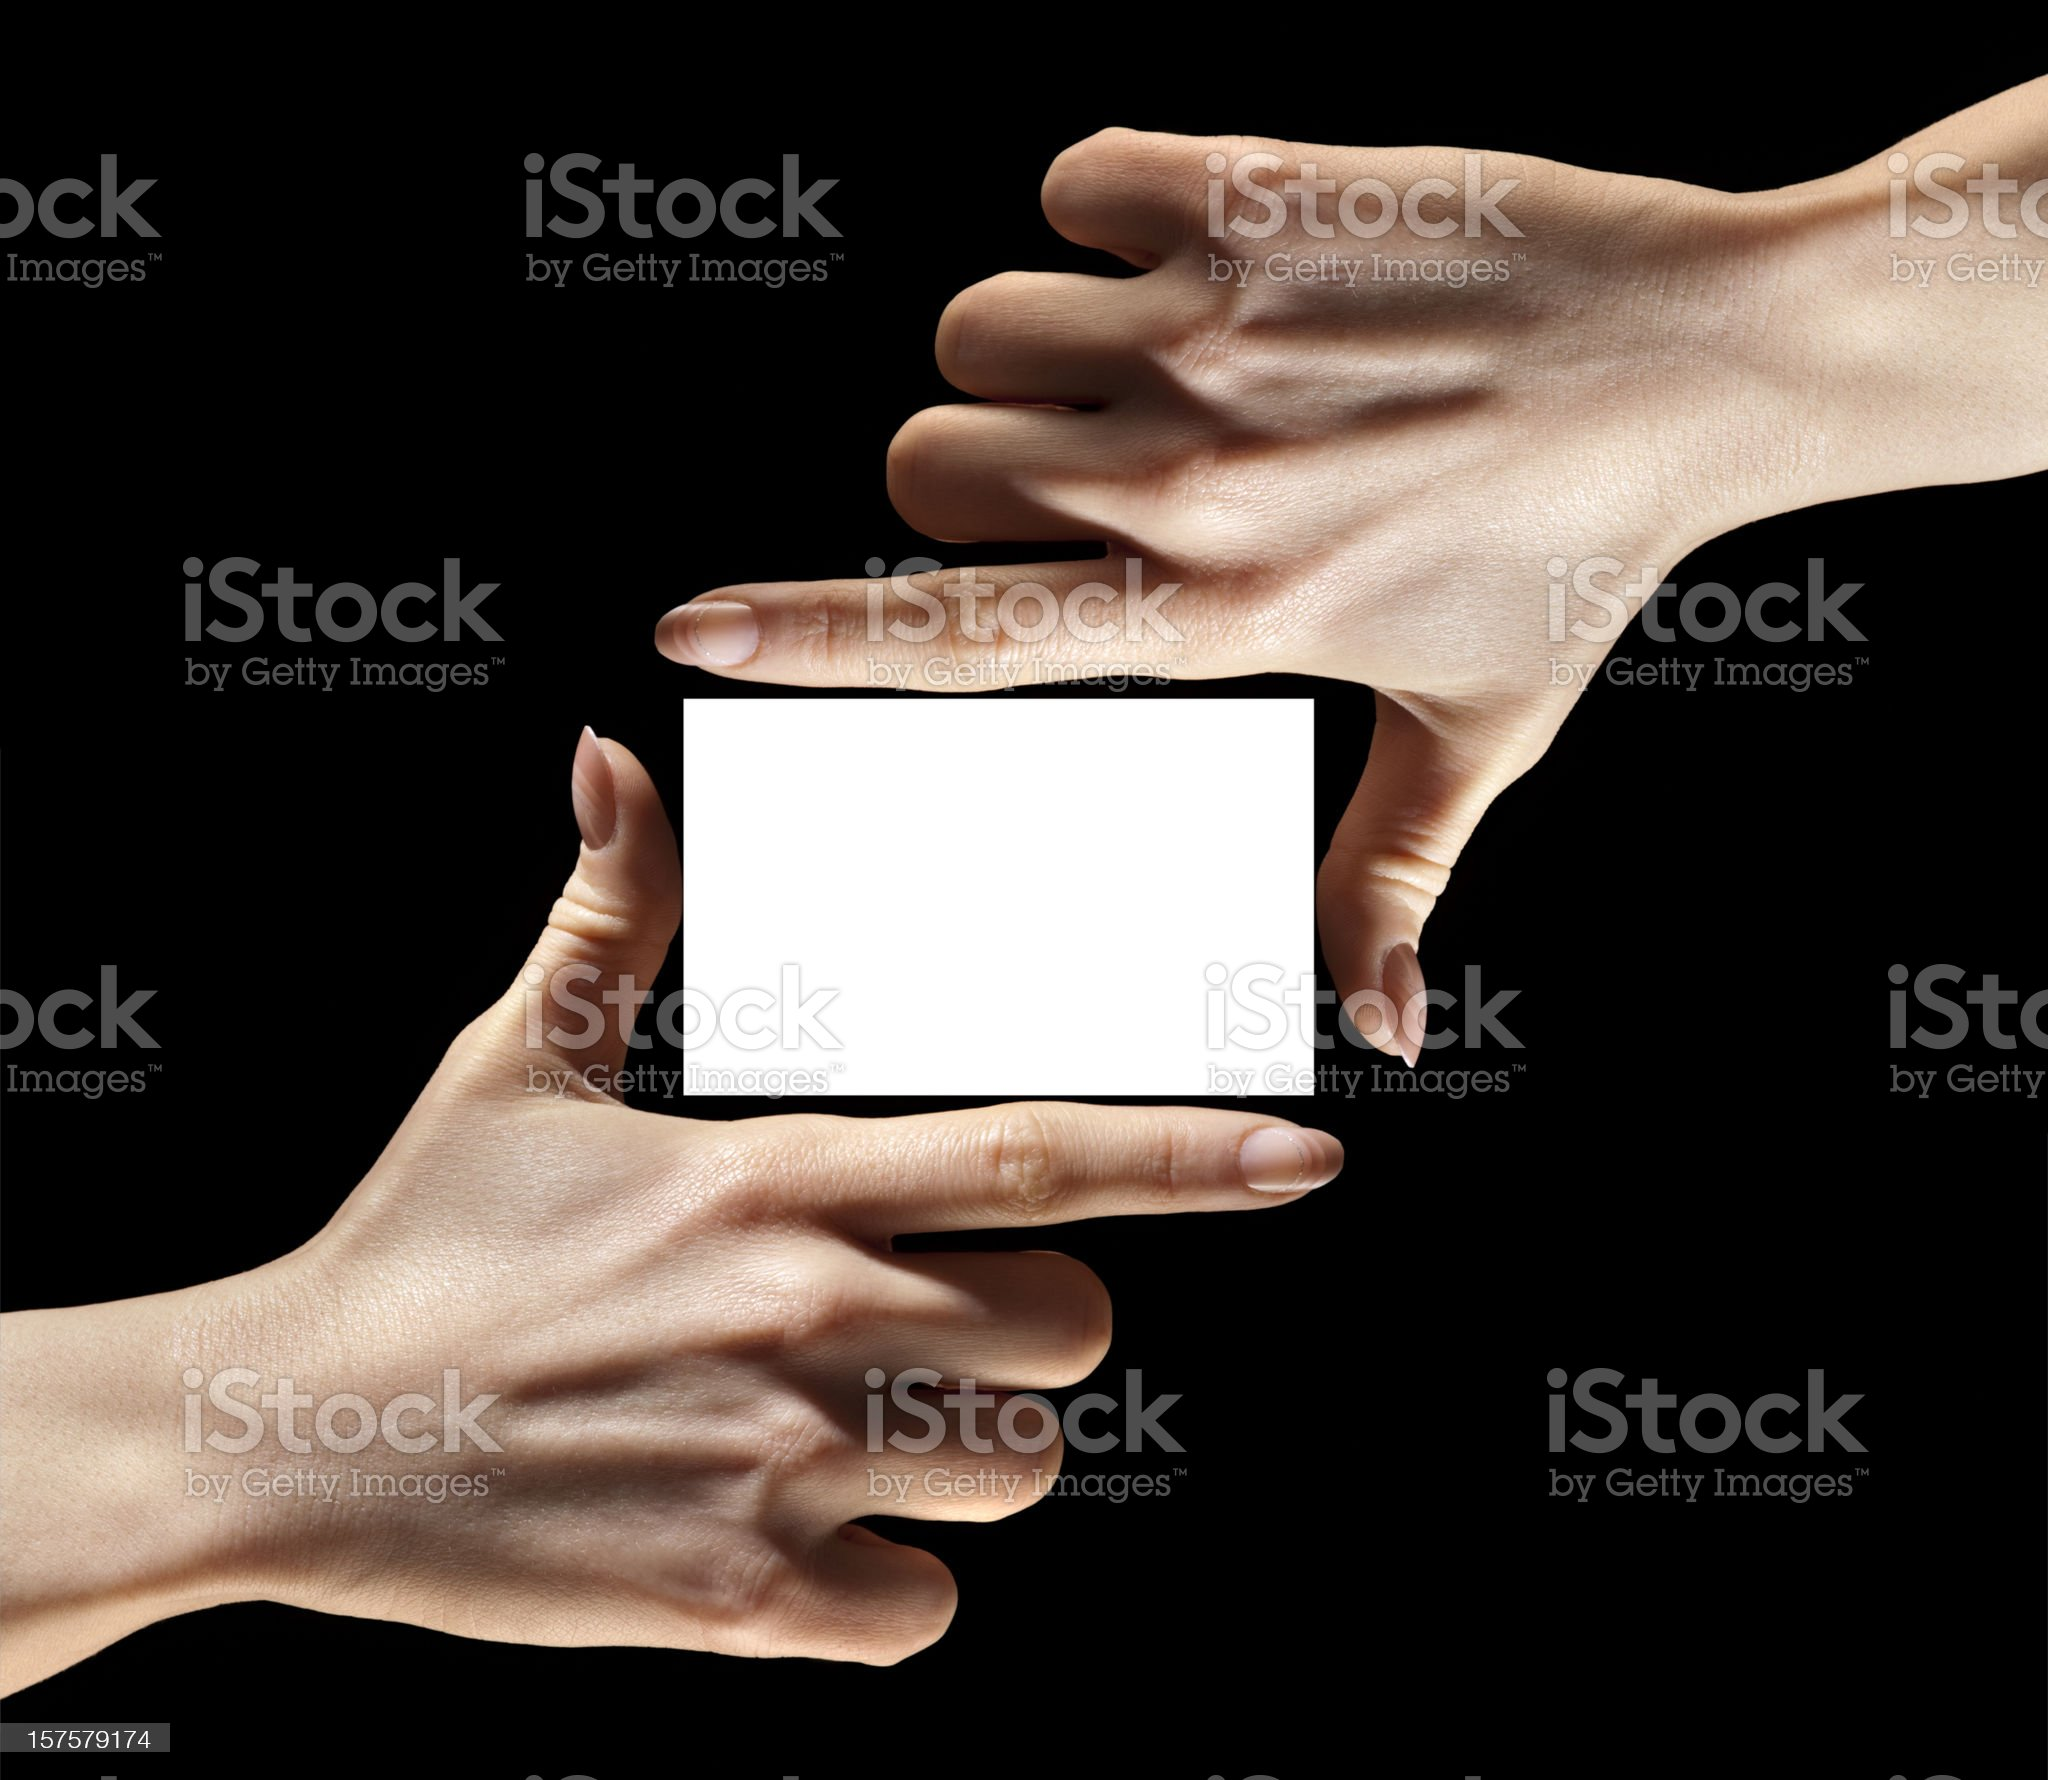 Hands Fingers Holding, Framing Blank Business Card, Insert Your Information royalty-free stock photo